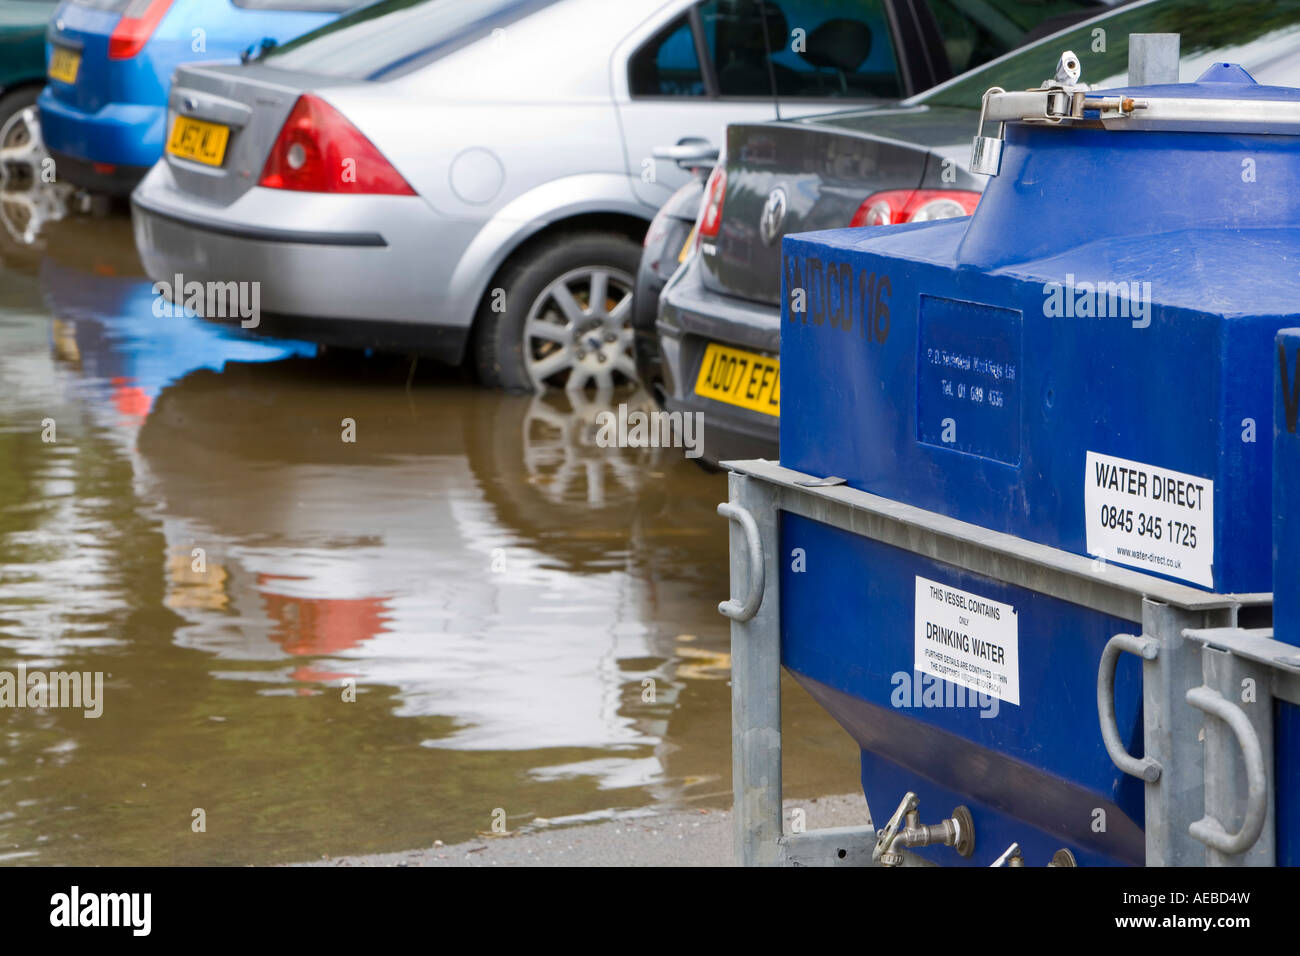 Flooded cars in Tewkesbury - Stock Image